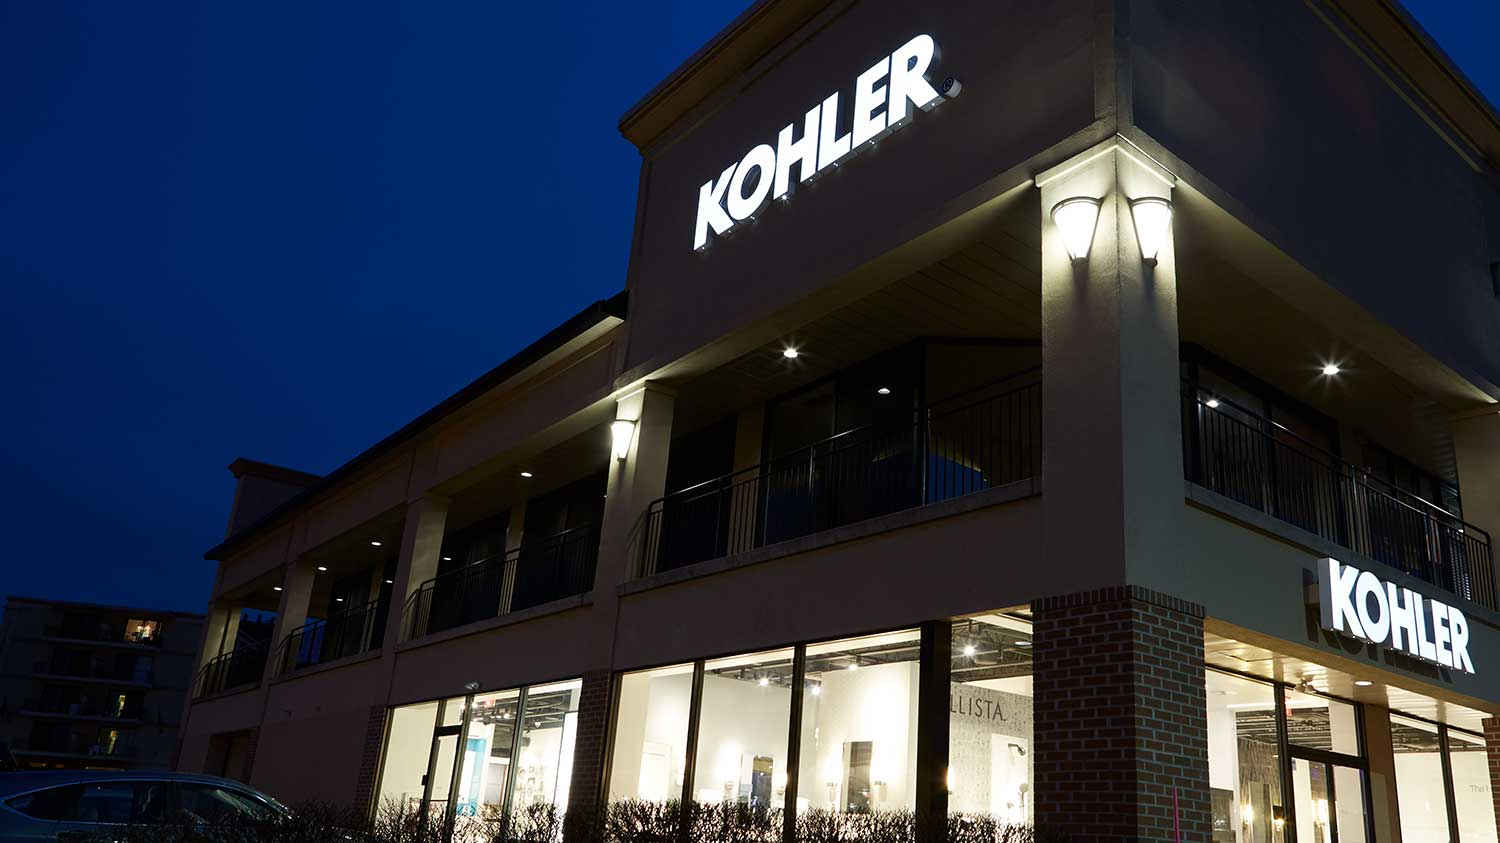 KOHLER Signature Store by Weinstein Supply